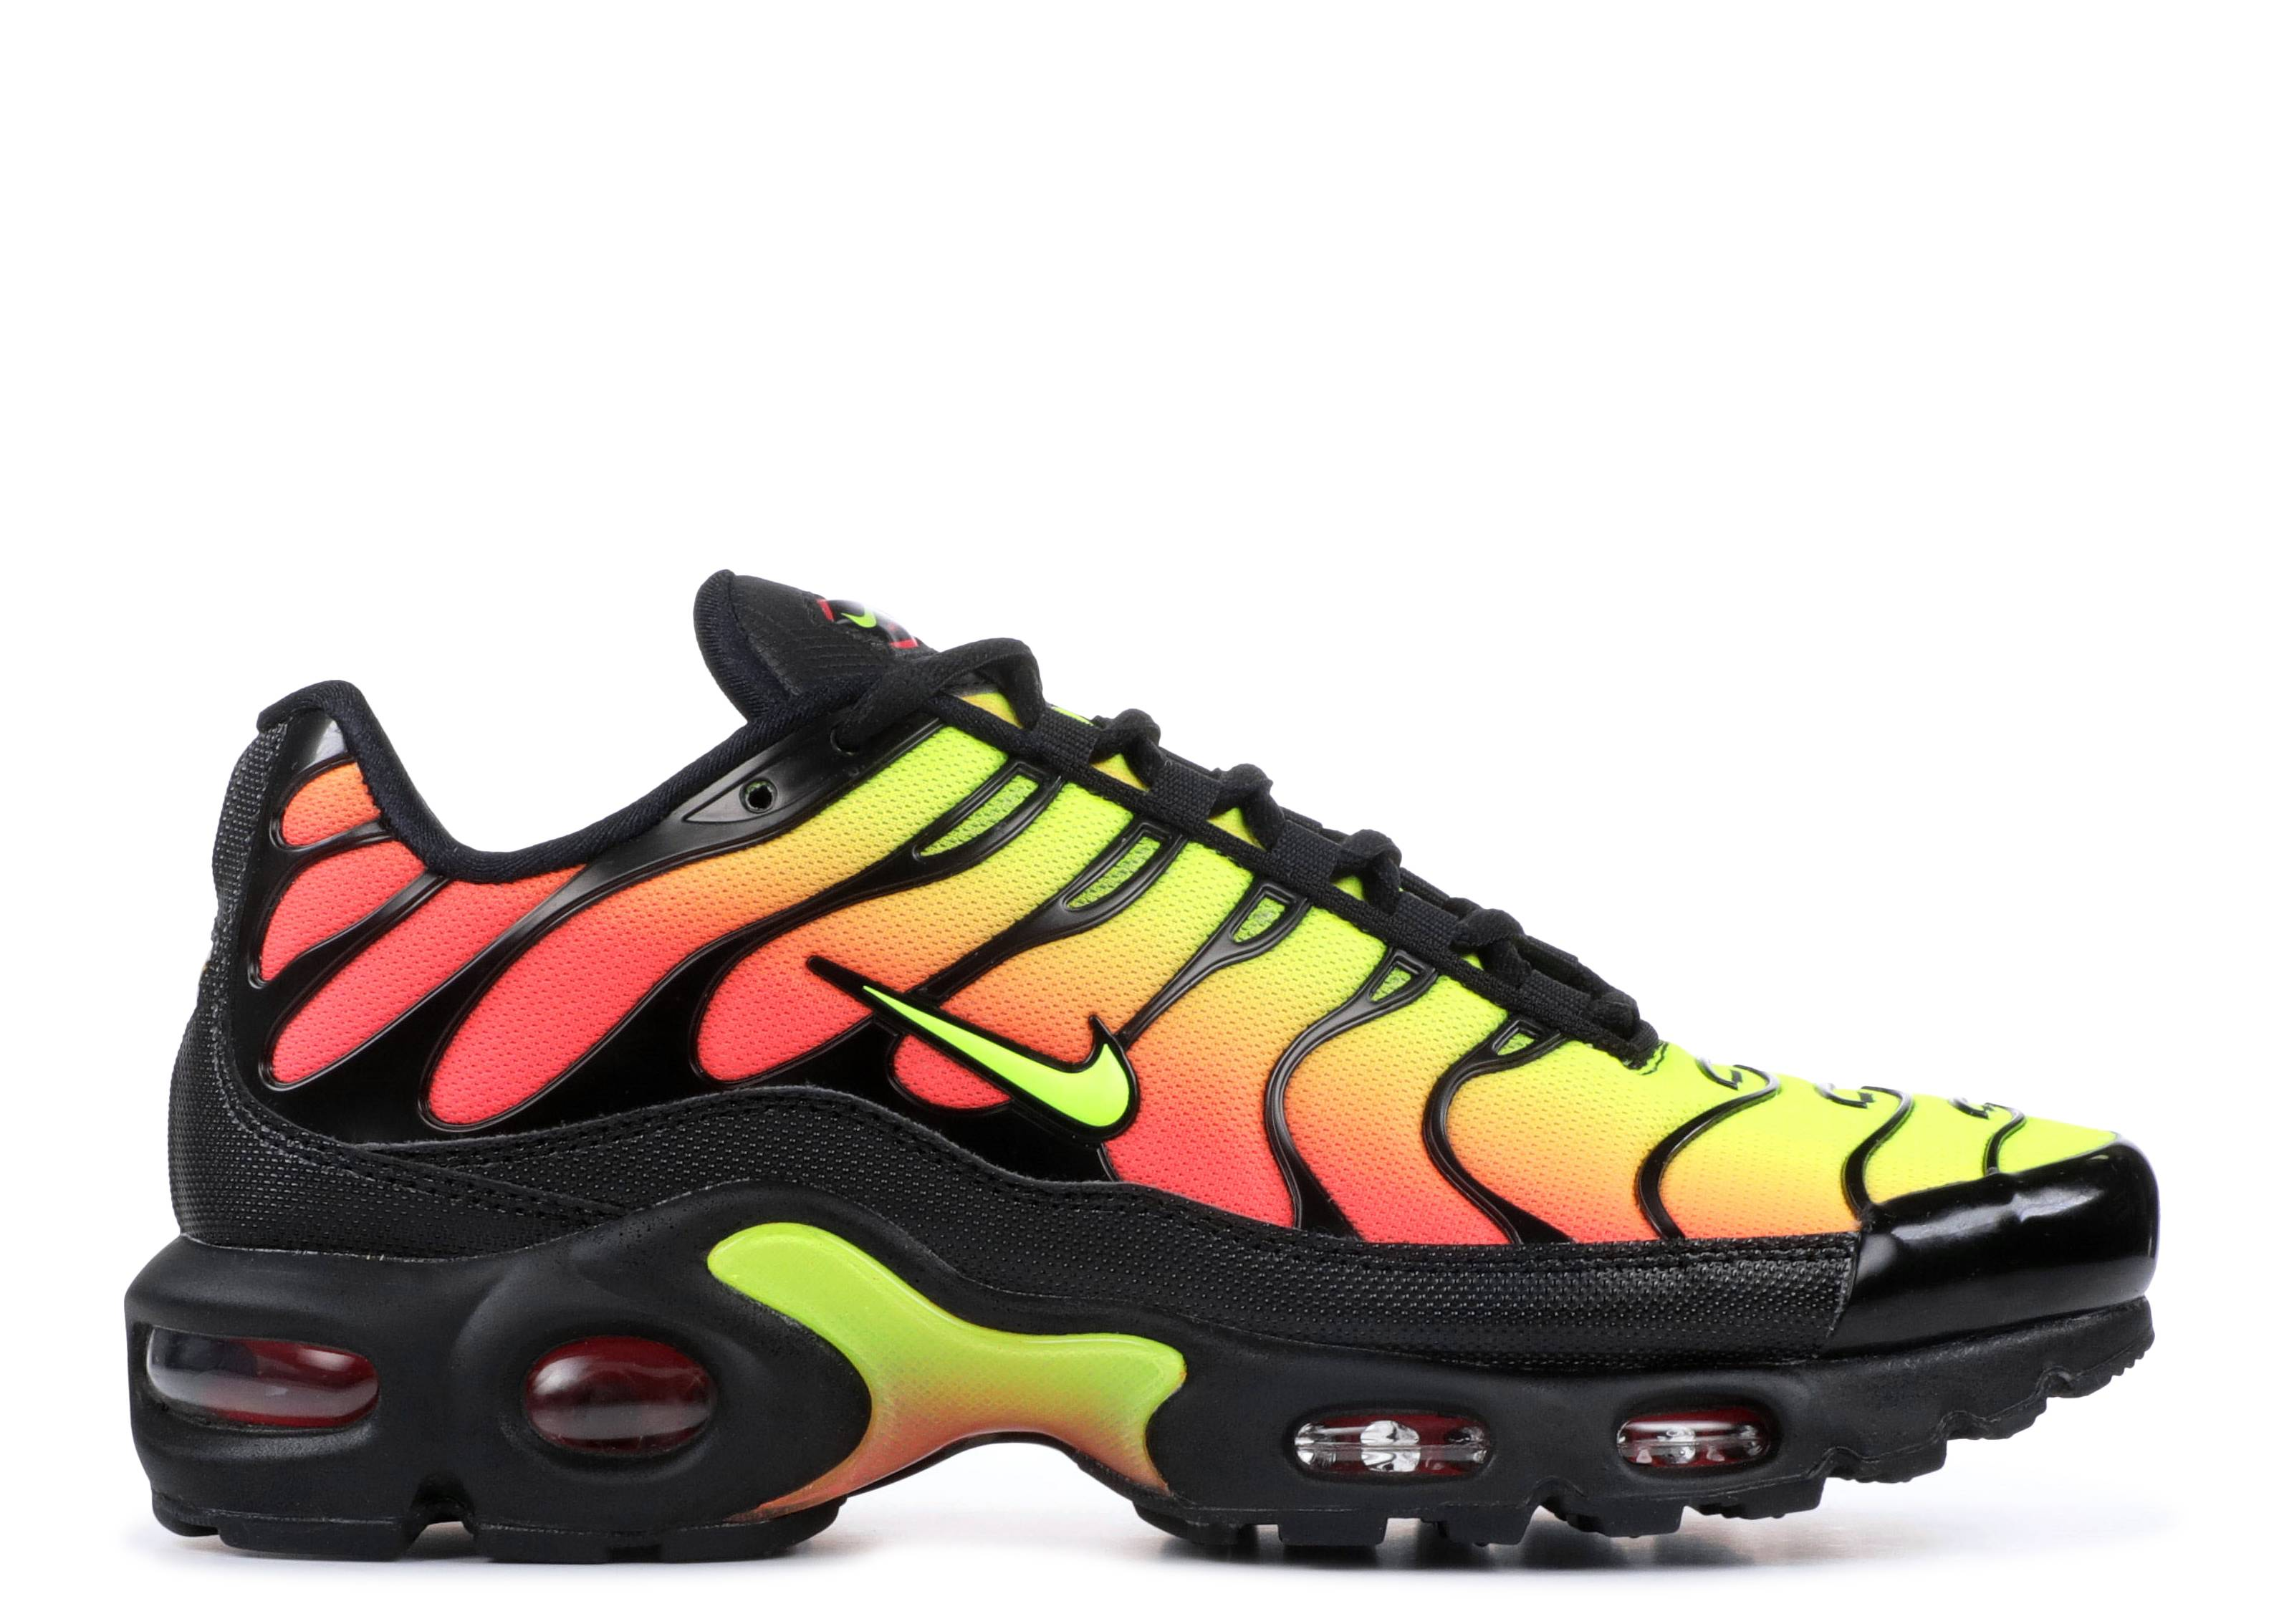 WMNS AIR MAX PLUS TN SE